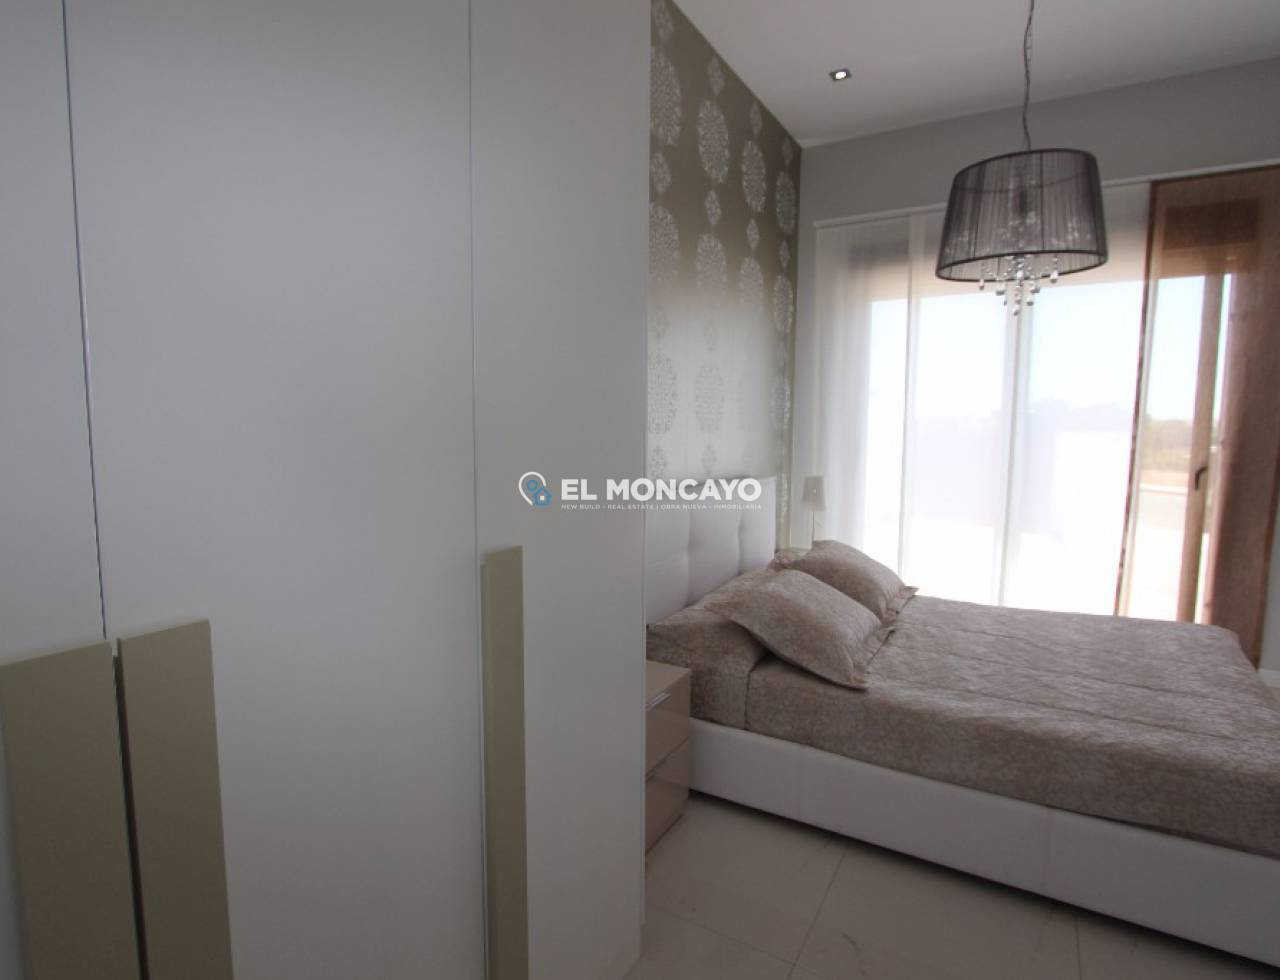 New build villa in Villamartin - Orihuela Costa - Costa Blanca south 142 (19)